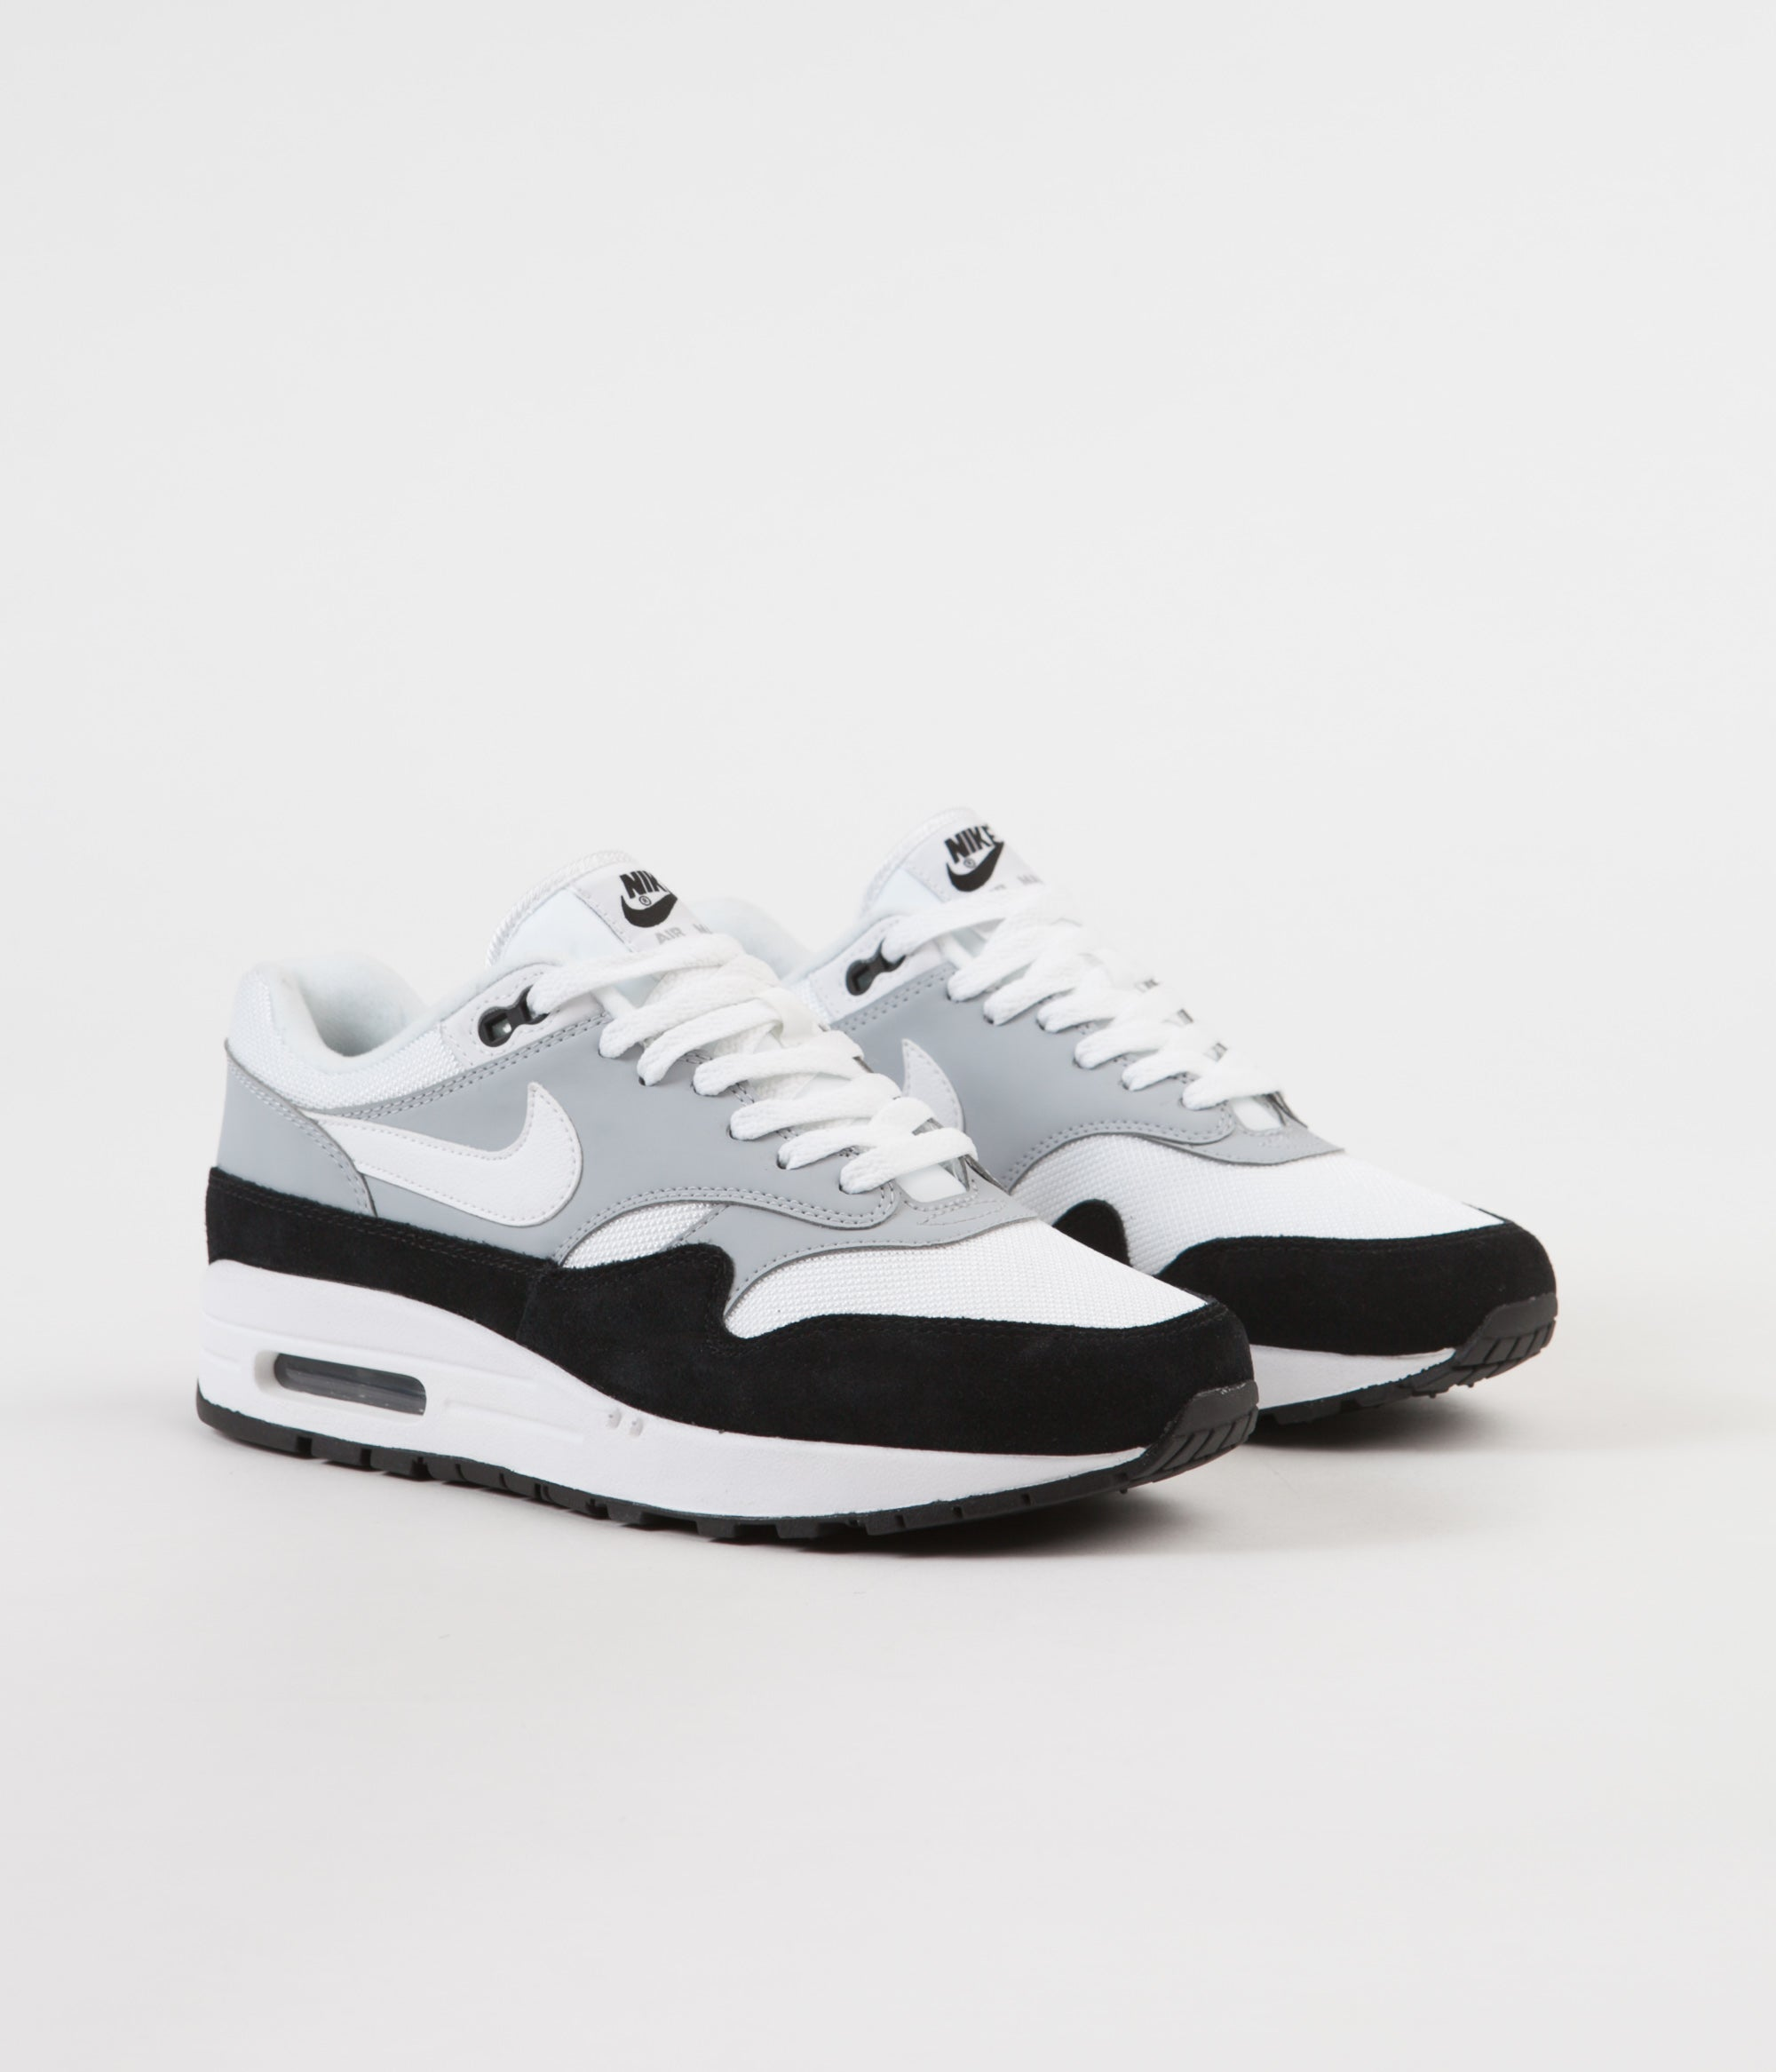 best sneakers dfe08 a7103 ... Nike Air Max 1 Shoes - Wolf Grey   White - Black ...